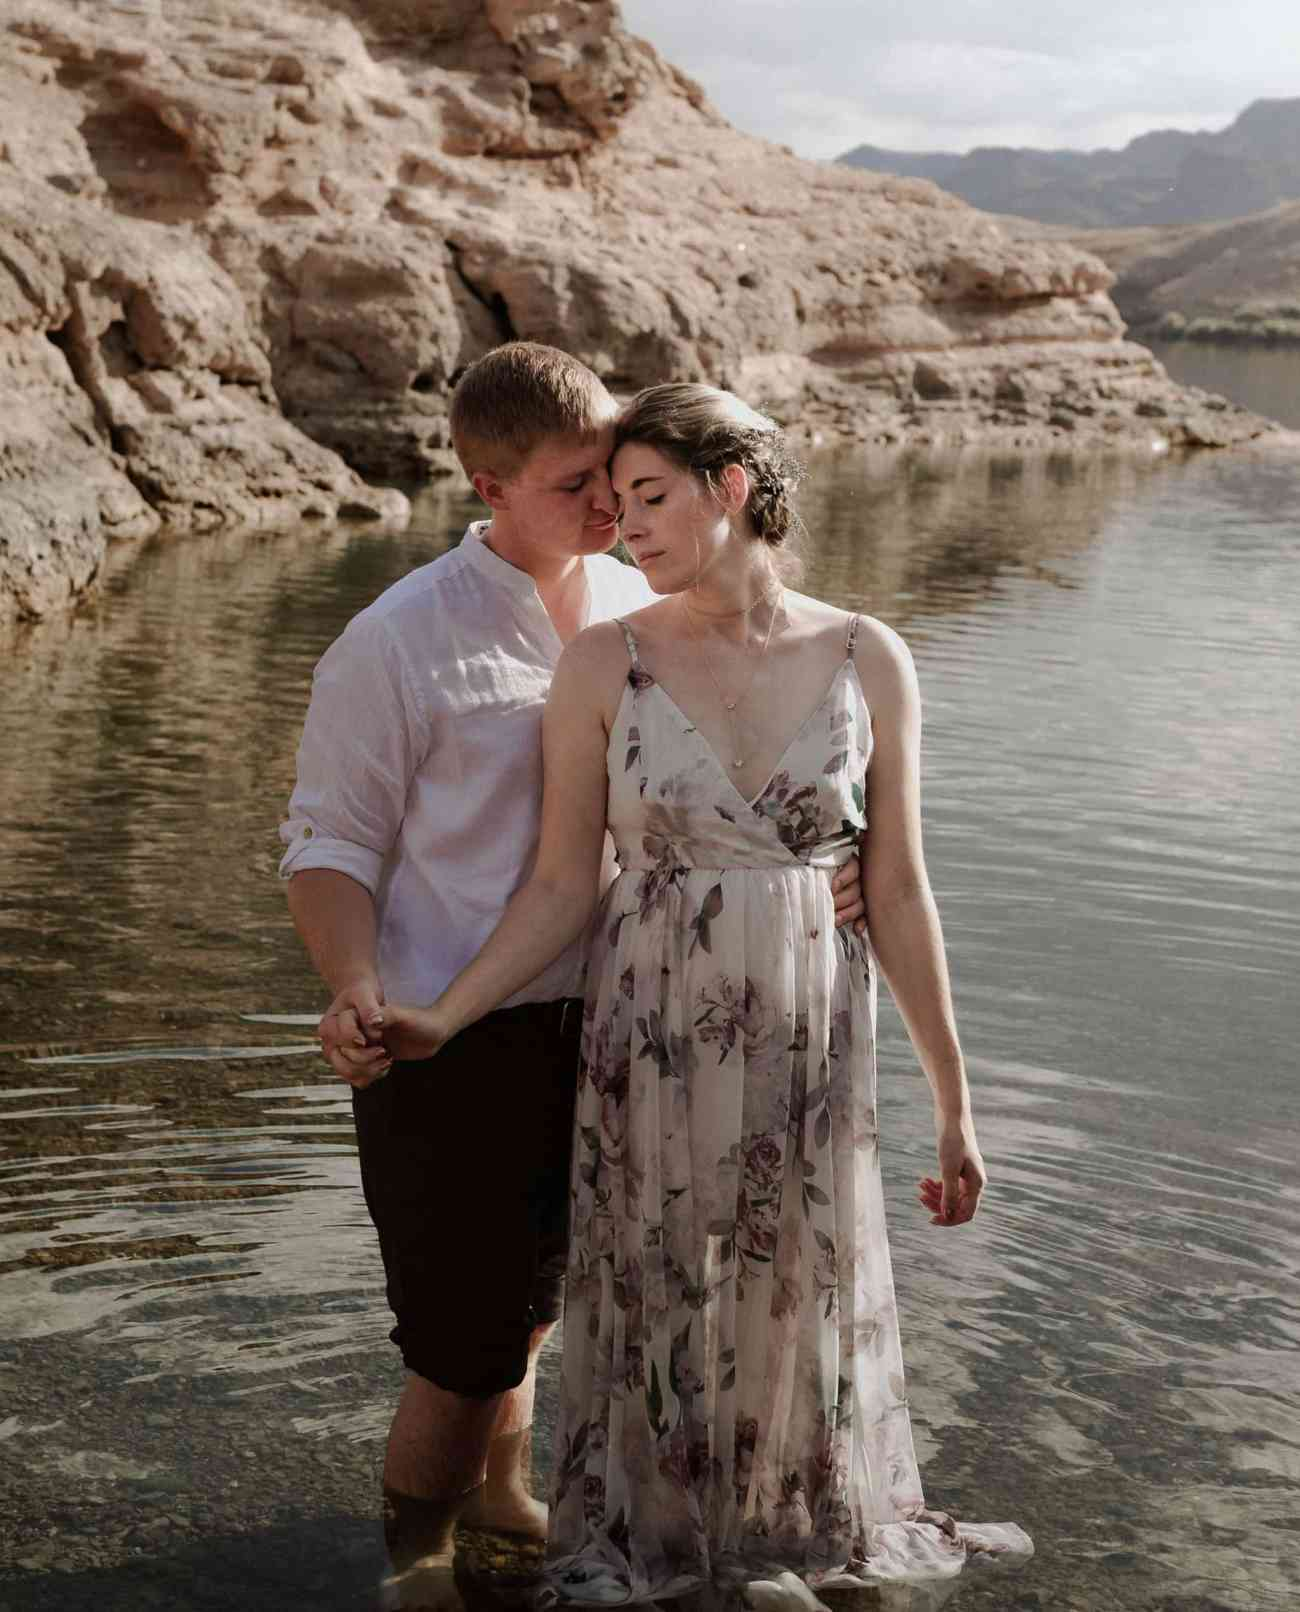 Bride and groom stand in Colorado River at Sunrise caressing each other